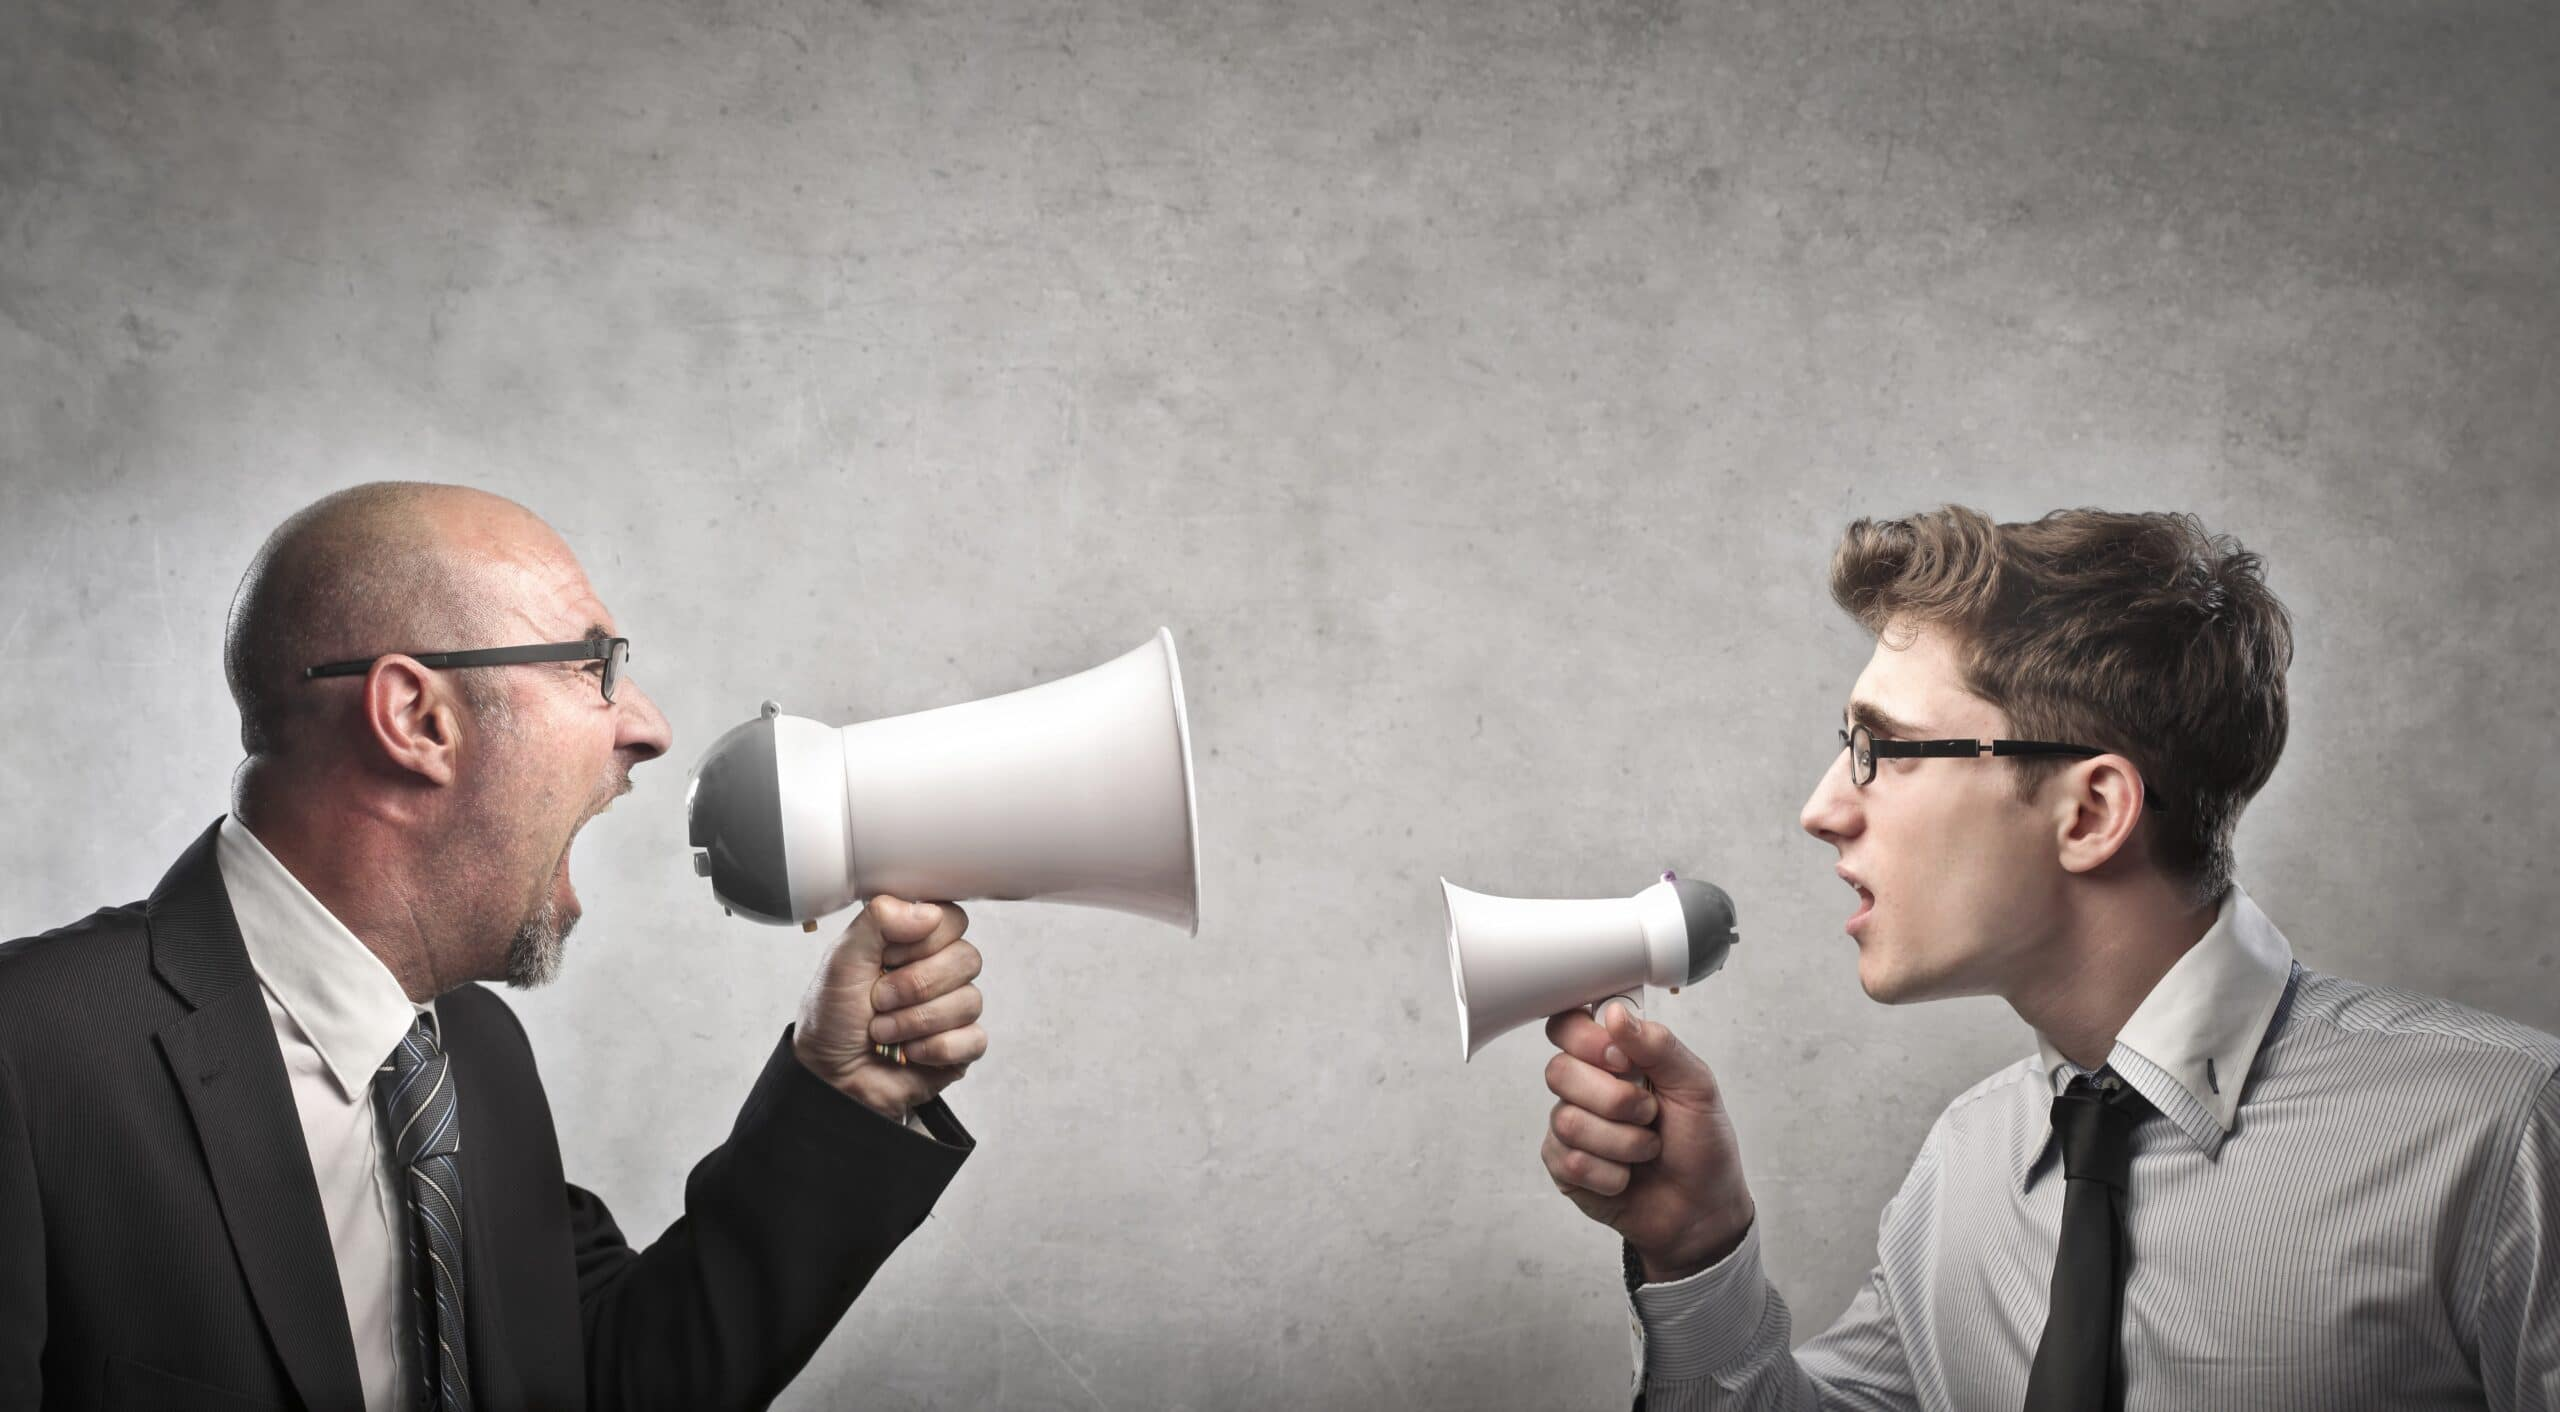 How to Manage Political Conflicts in the Workplace